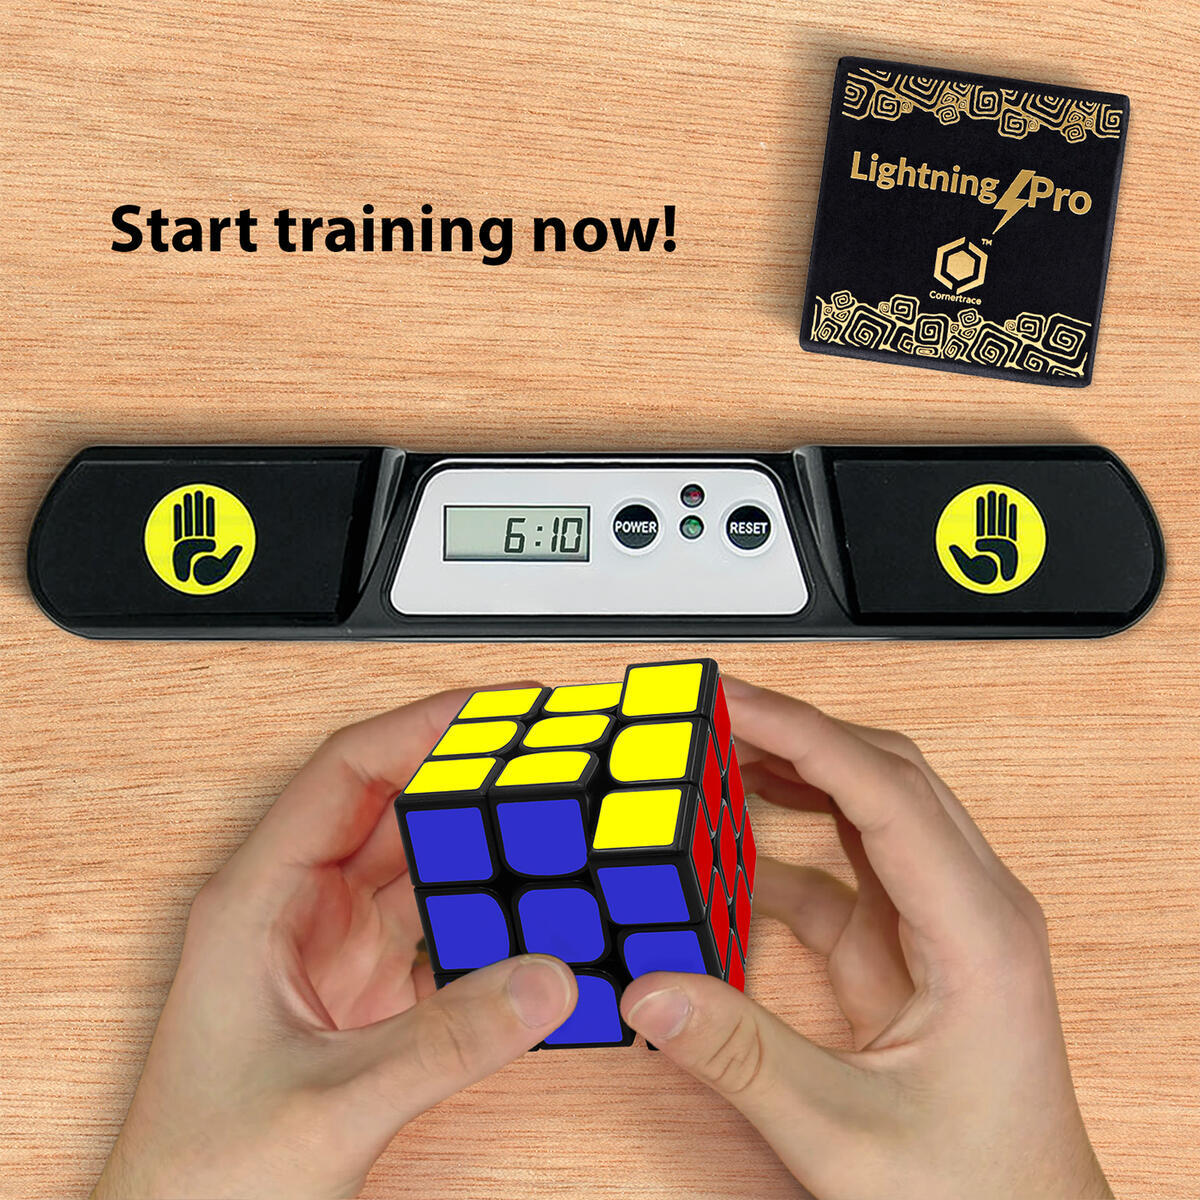 Cornertrace LightningPro: Competition Speed Cube, Durable and Quicker than Original, Best Magic Game Toy for Kids